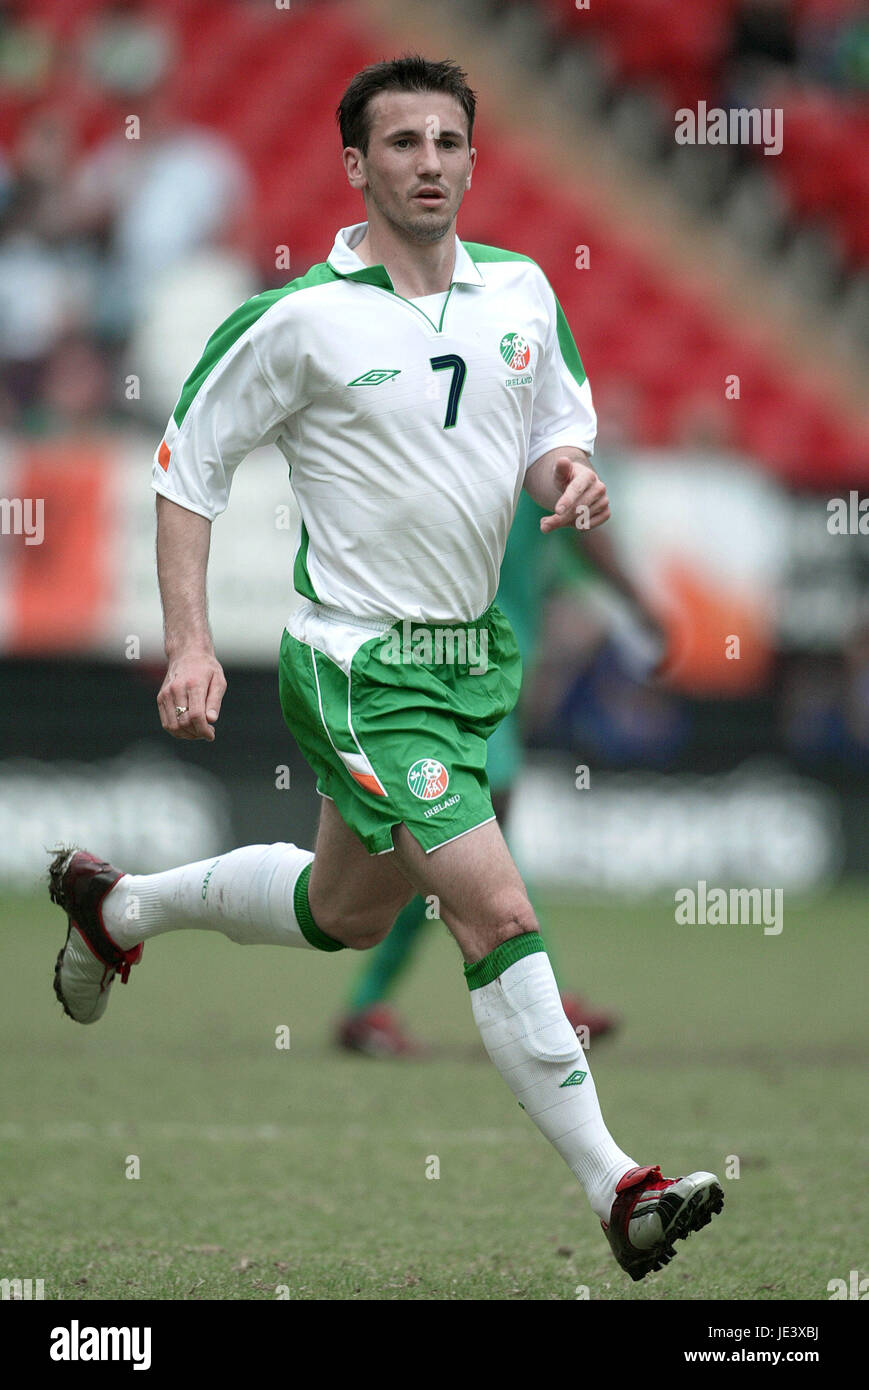 LIAM MILLER REP OF IRELAND & MANCHESTER UT THE VALLEY CHARLTON ENGLAND 29 May 2004 - Stock Image